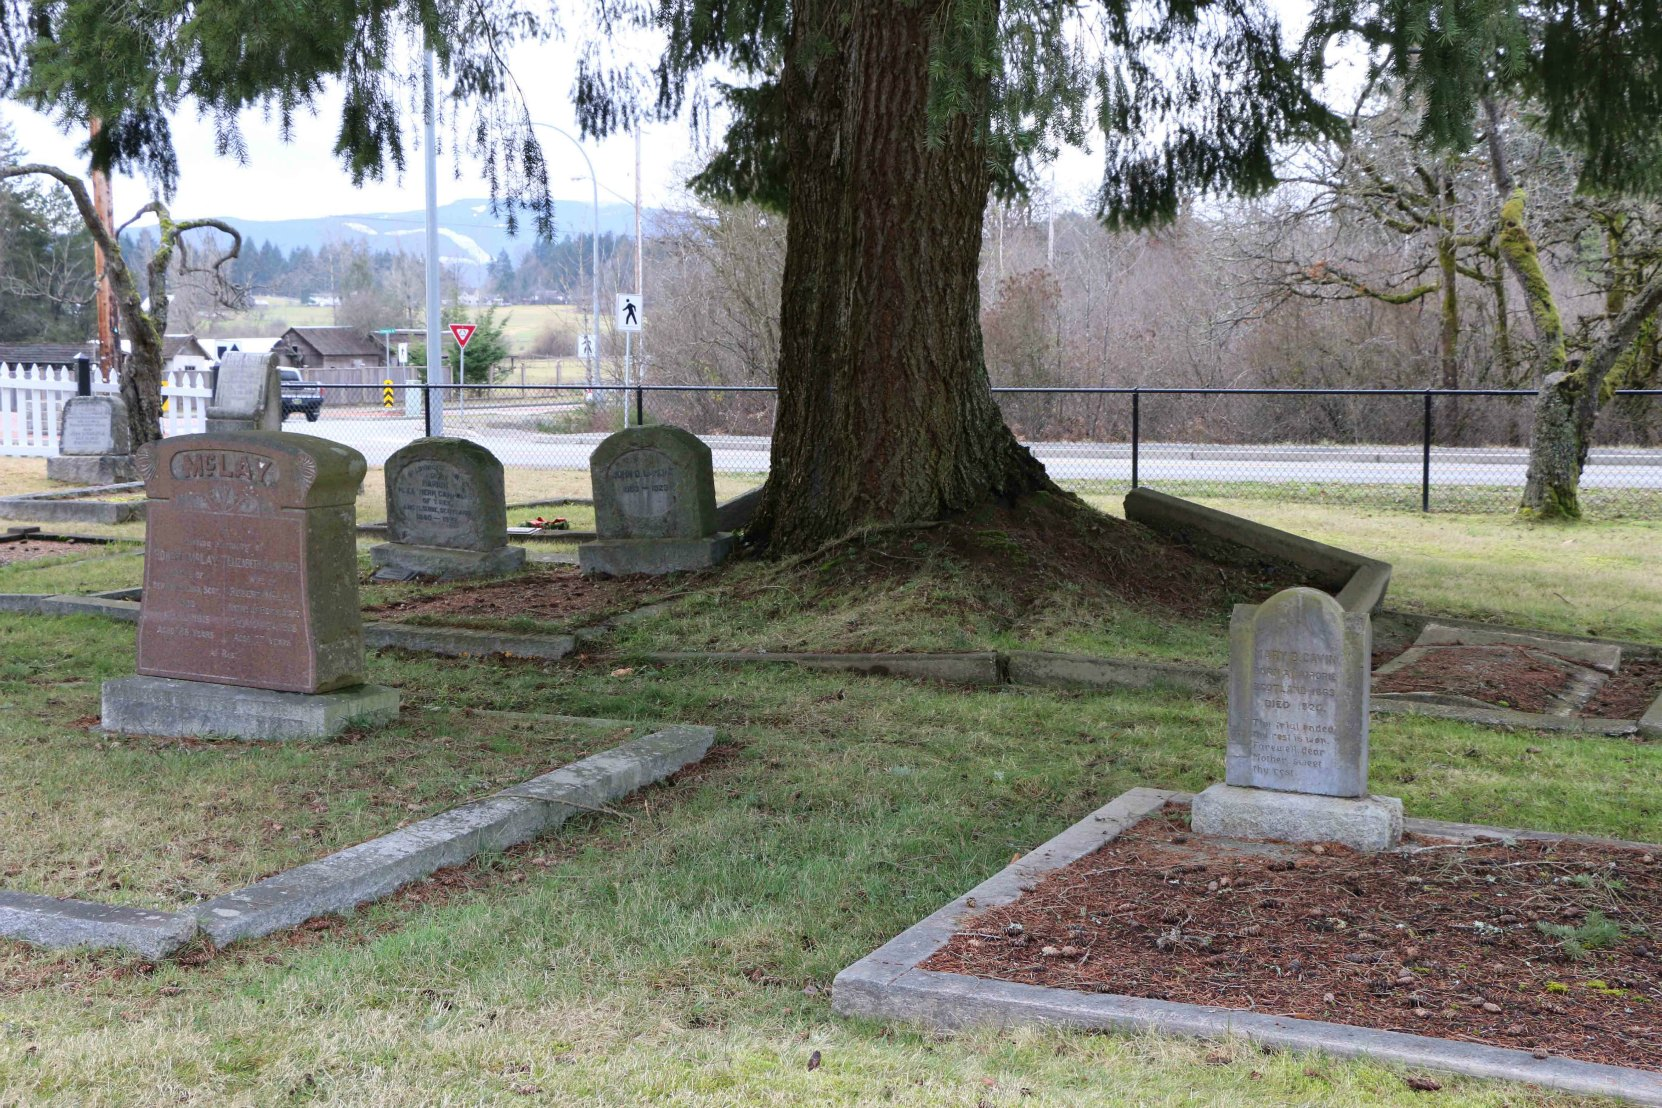 The unmarked grave of Isaac Newton Van Norman is between the two marked graves in the foreground. His brother Thomas Van Norman is buried the grave to the right of the large tree in the background. Mountain View Cemetery, North Cowichan. (photo by Temple Lodge No. 33 Historian)